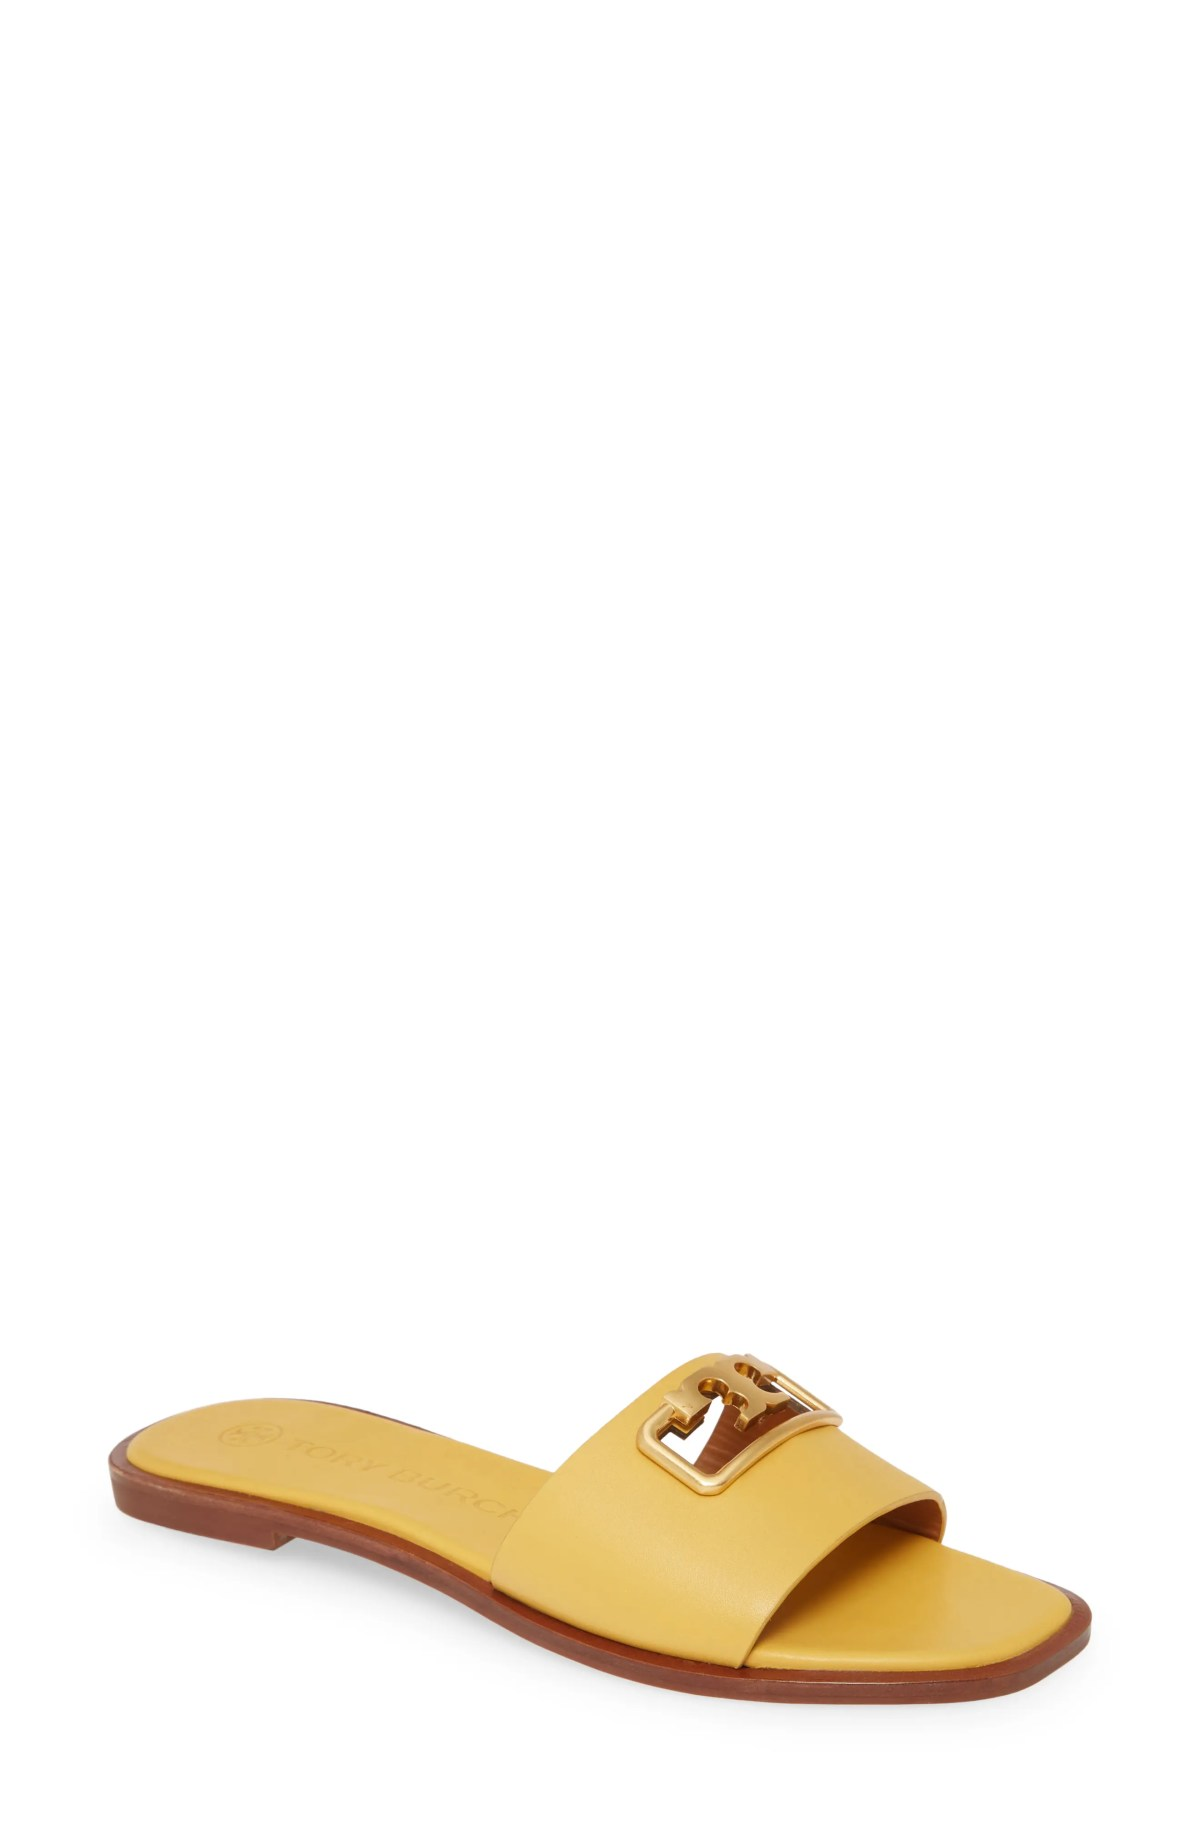 TORY BURCH Selby Slide Sandal, Main, color, GOLDFINCH